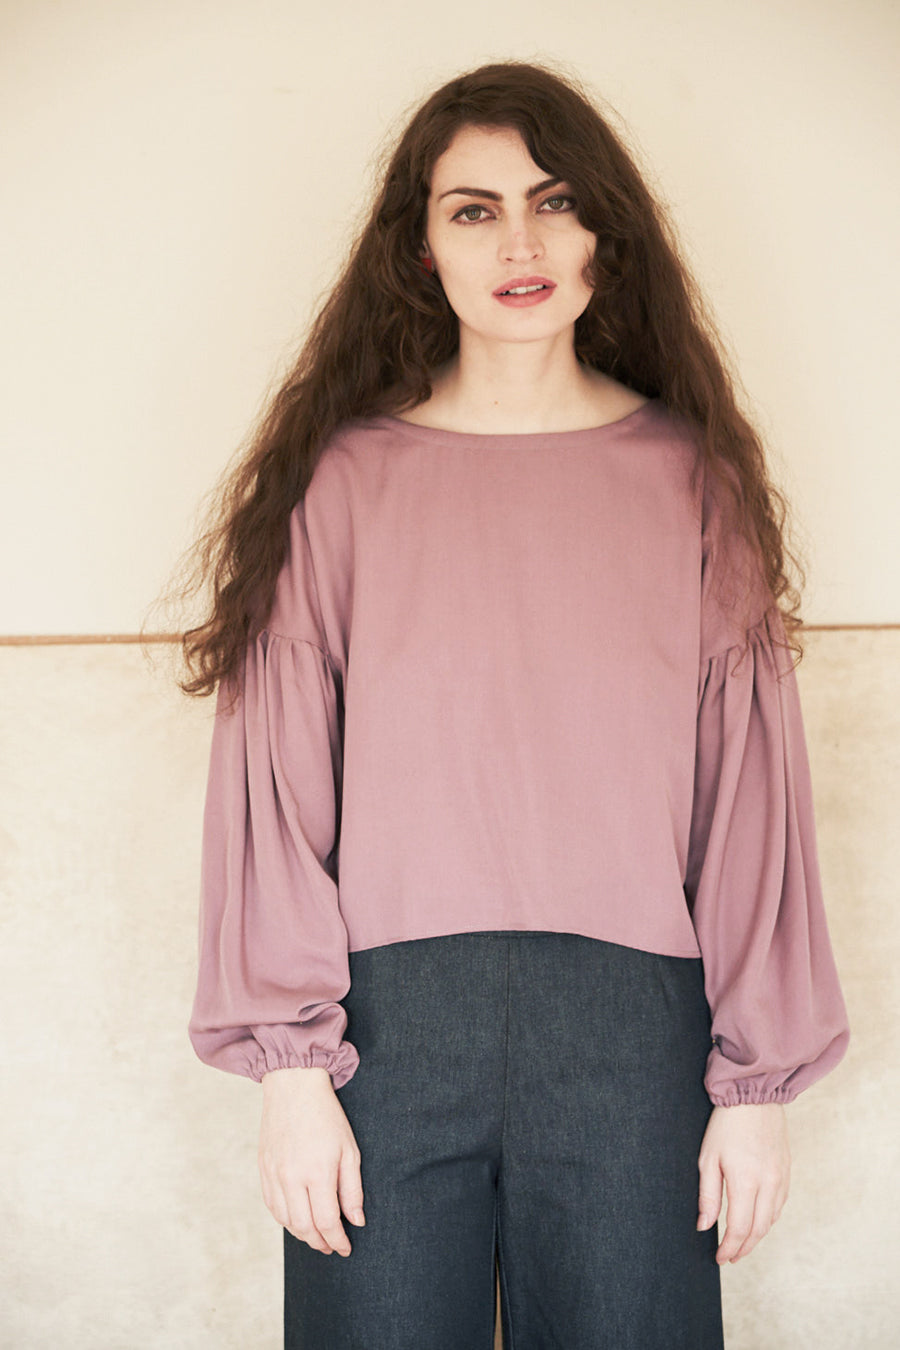 Elise Ballegeer Sustainable Tencel Britta Top in Primrose